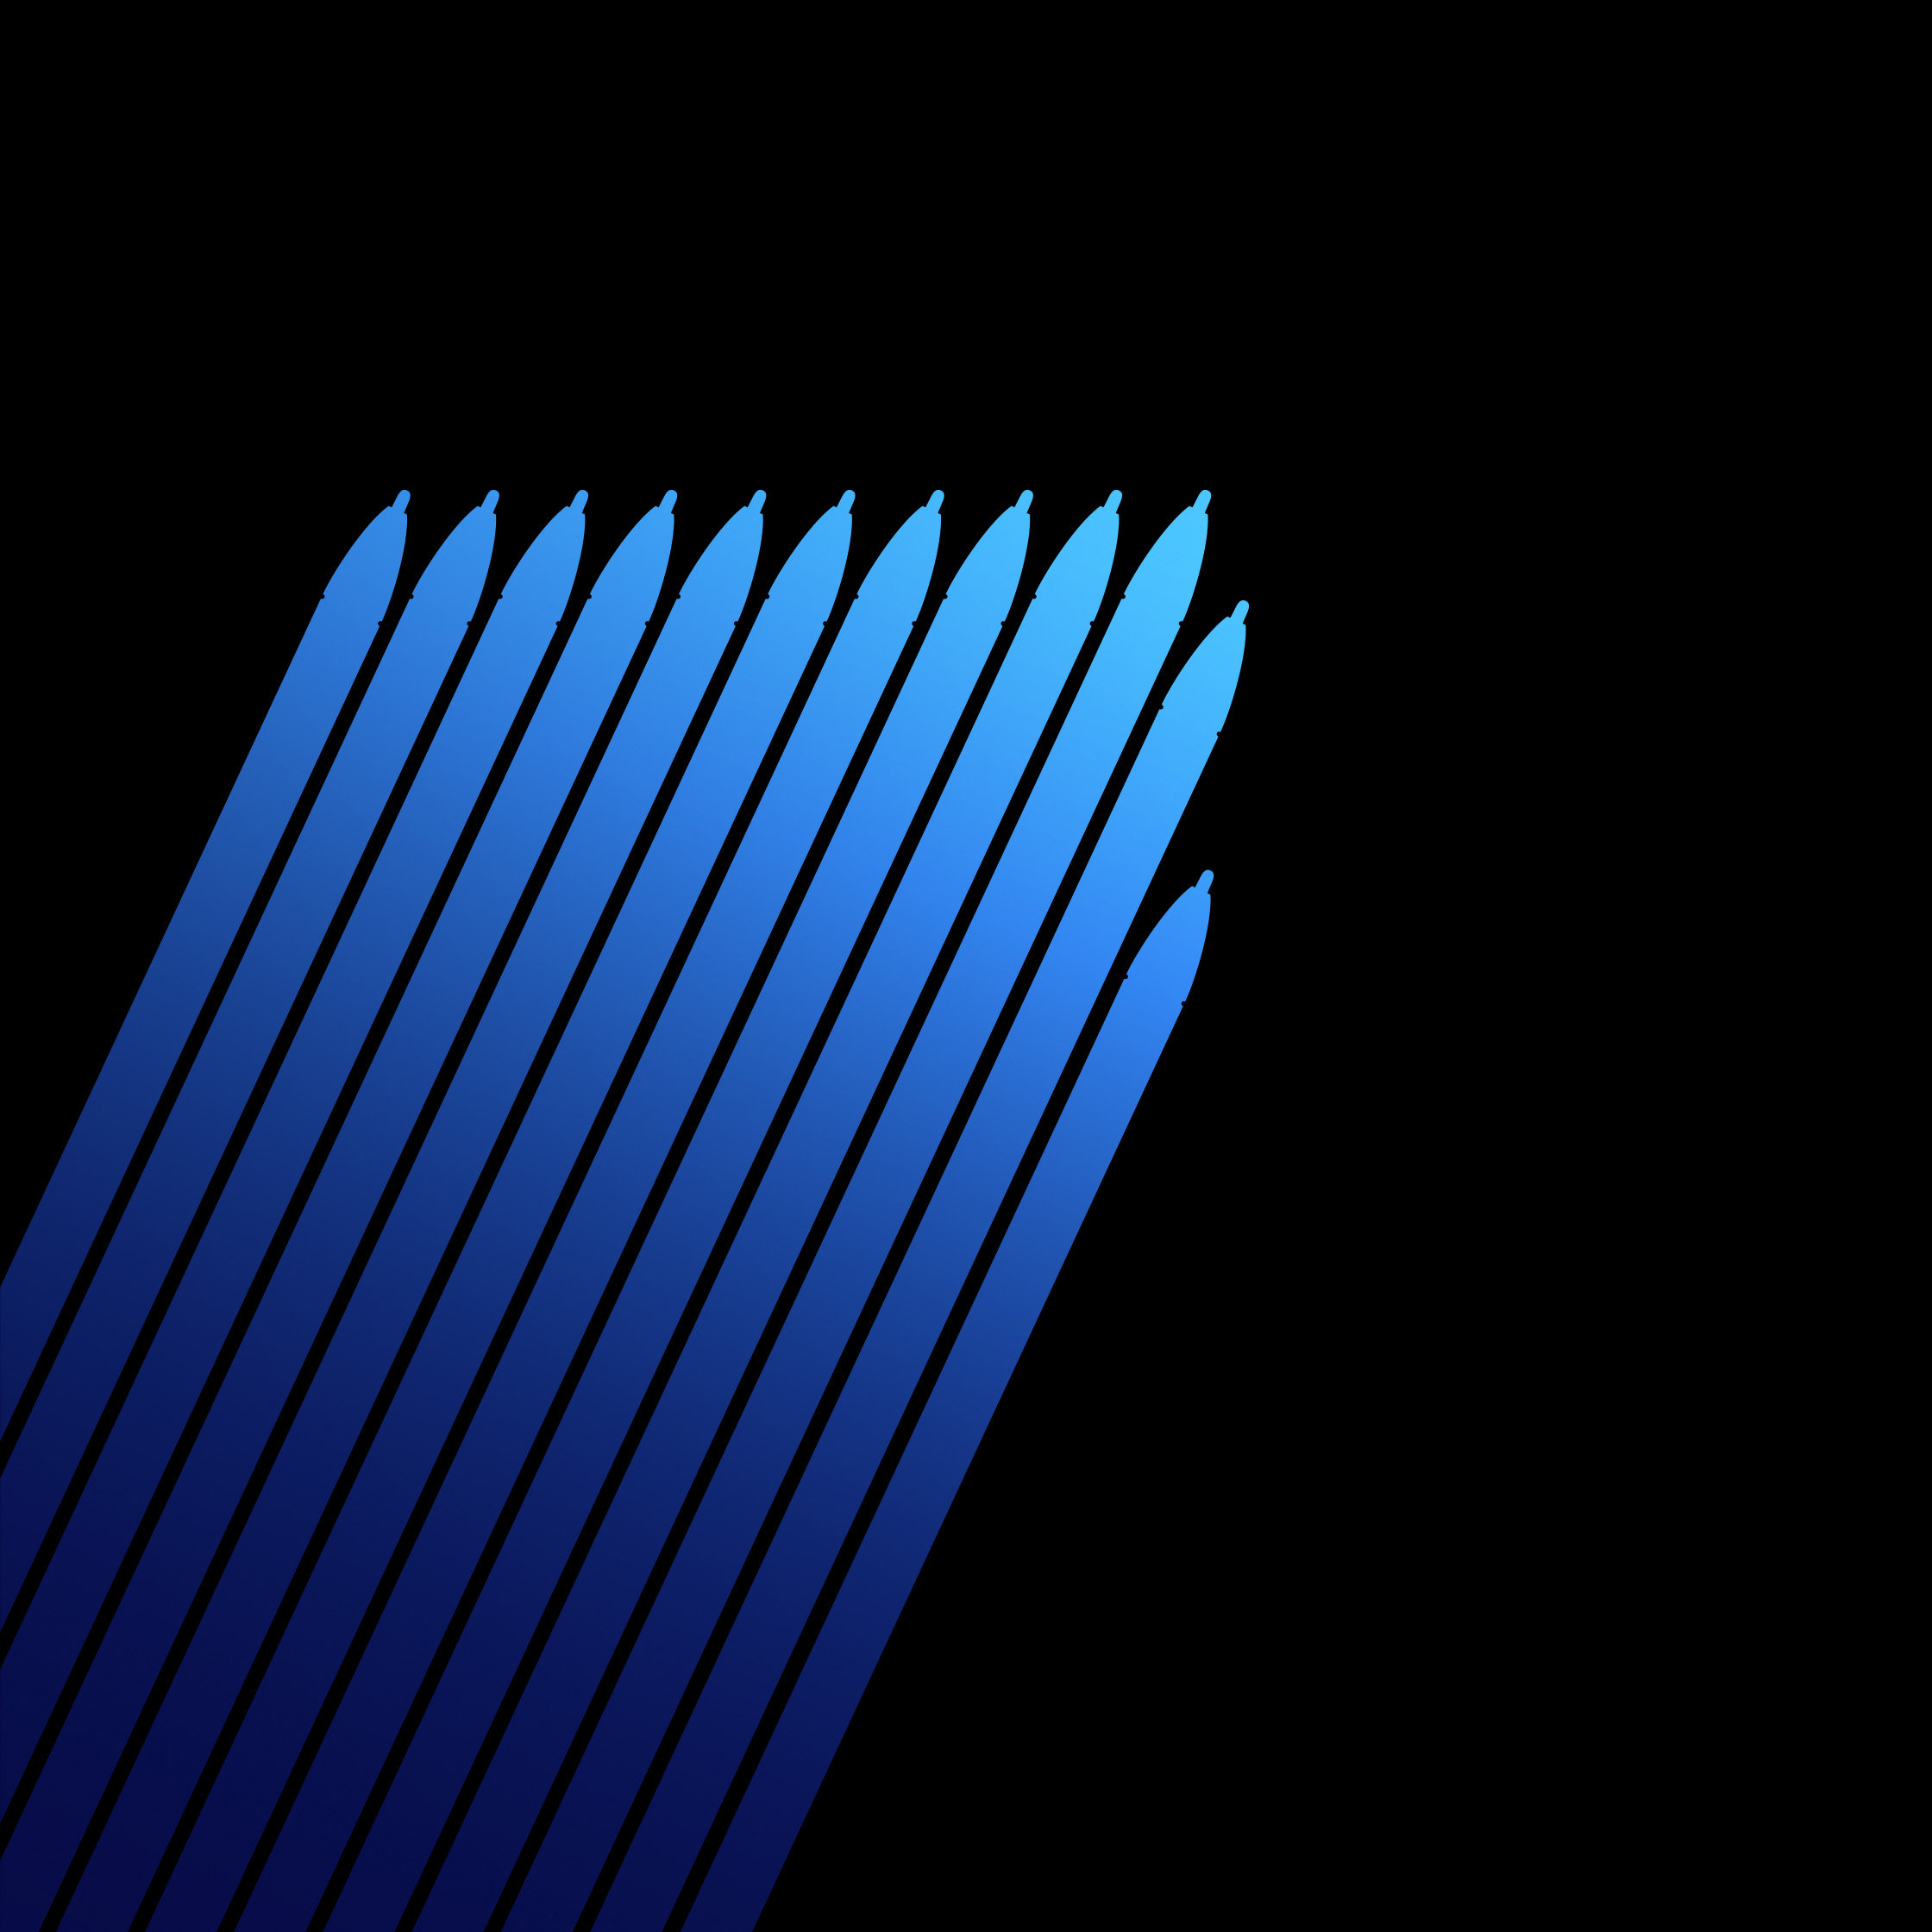 Samsung galaxy note 7 stock wallpapers in quad hd updated - Samsung galaxy note 8 hd wallpaper ...